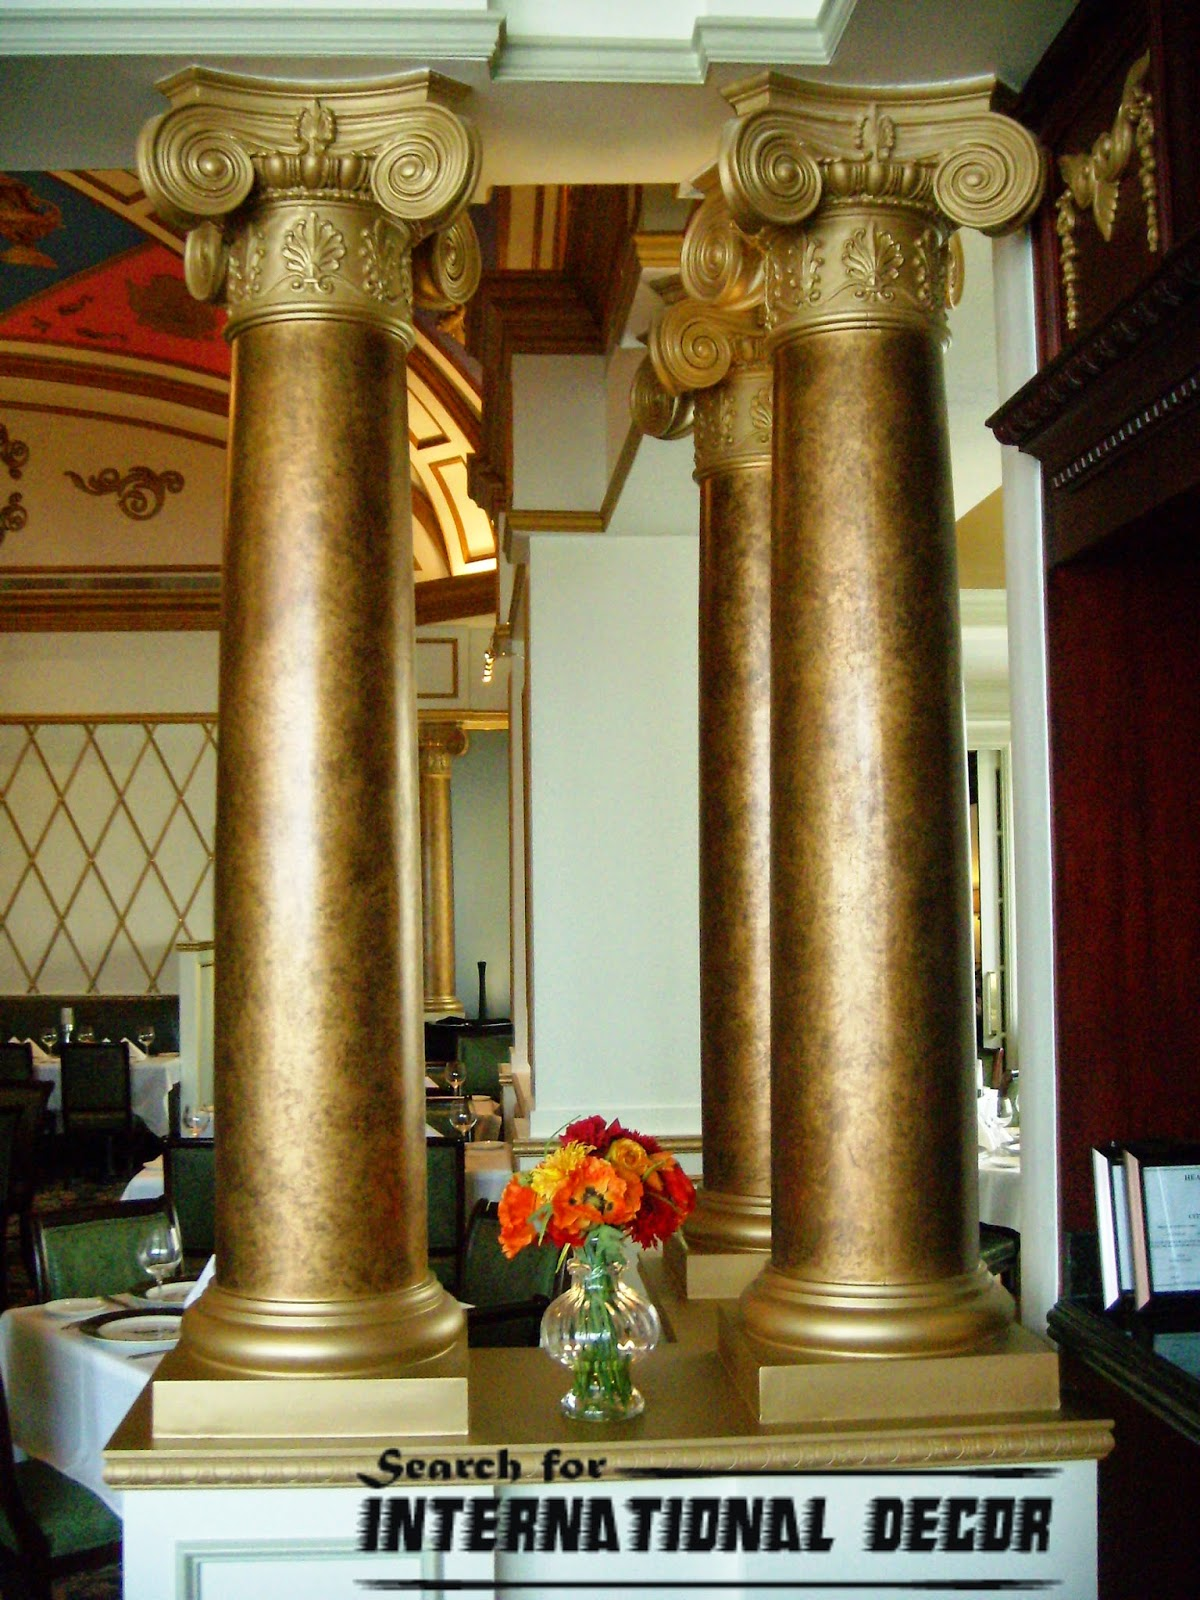 Interior Decorative Items Decorative Columns Stylish Element In Modern Interior